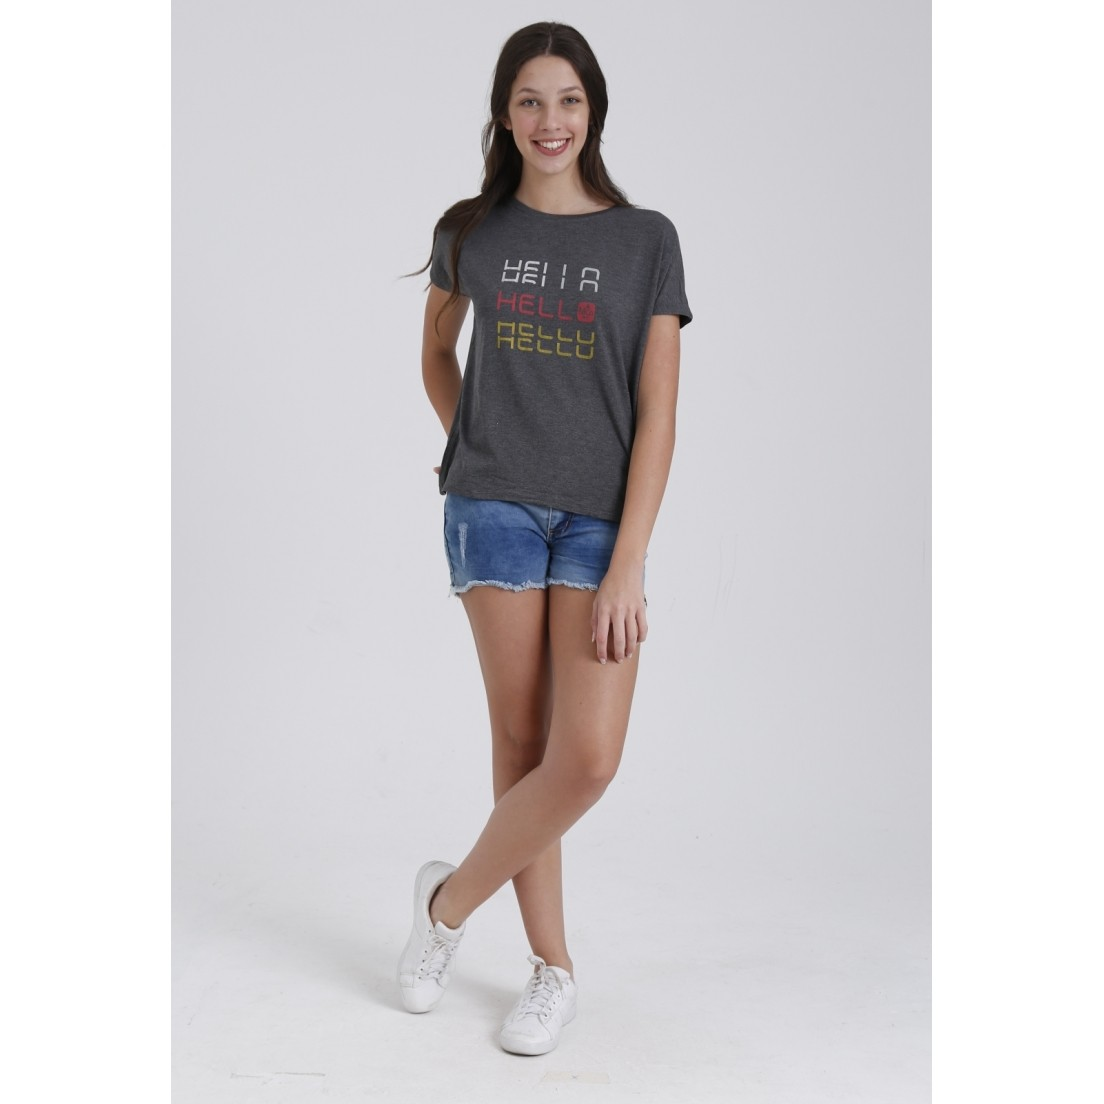 Camiseta Hello  - Metro & Co.